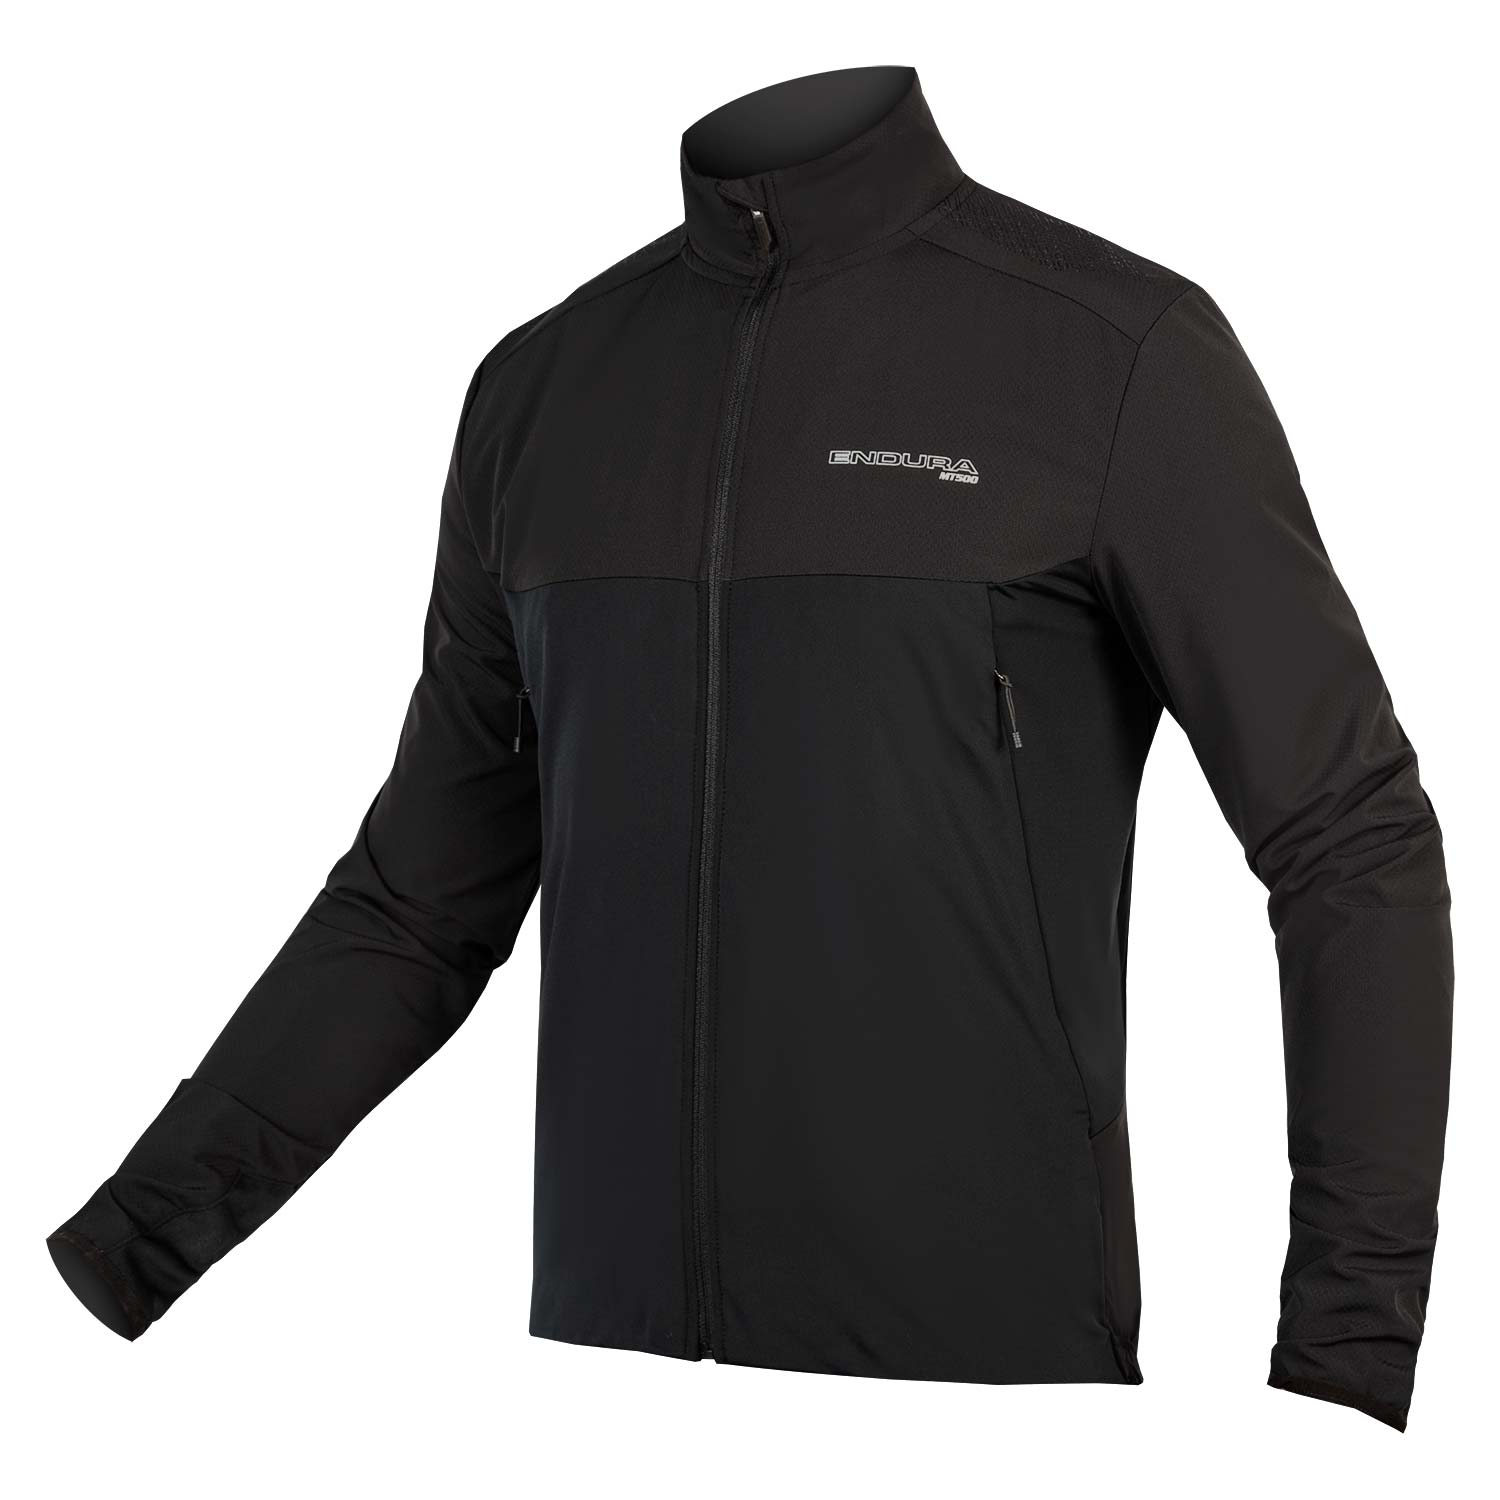 MT500 Thermo L/S Jersey Black